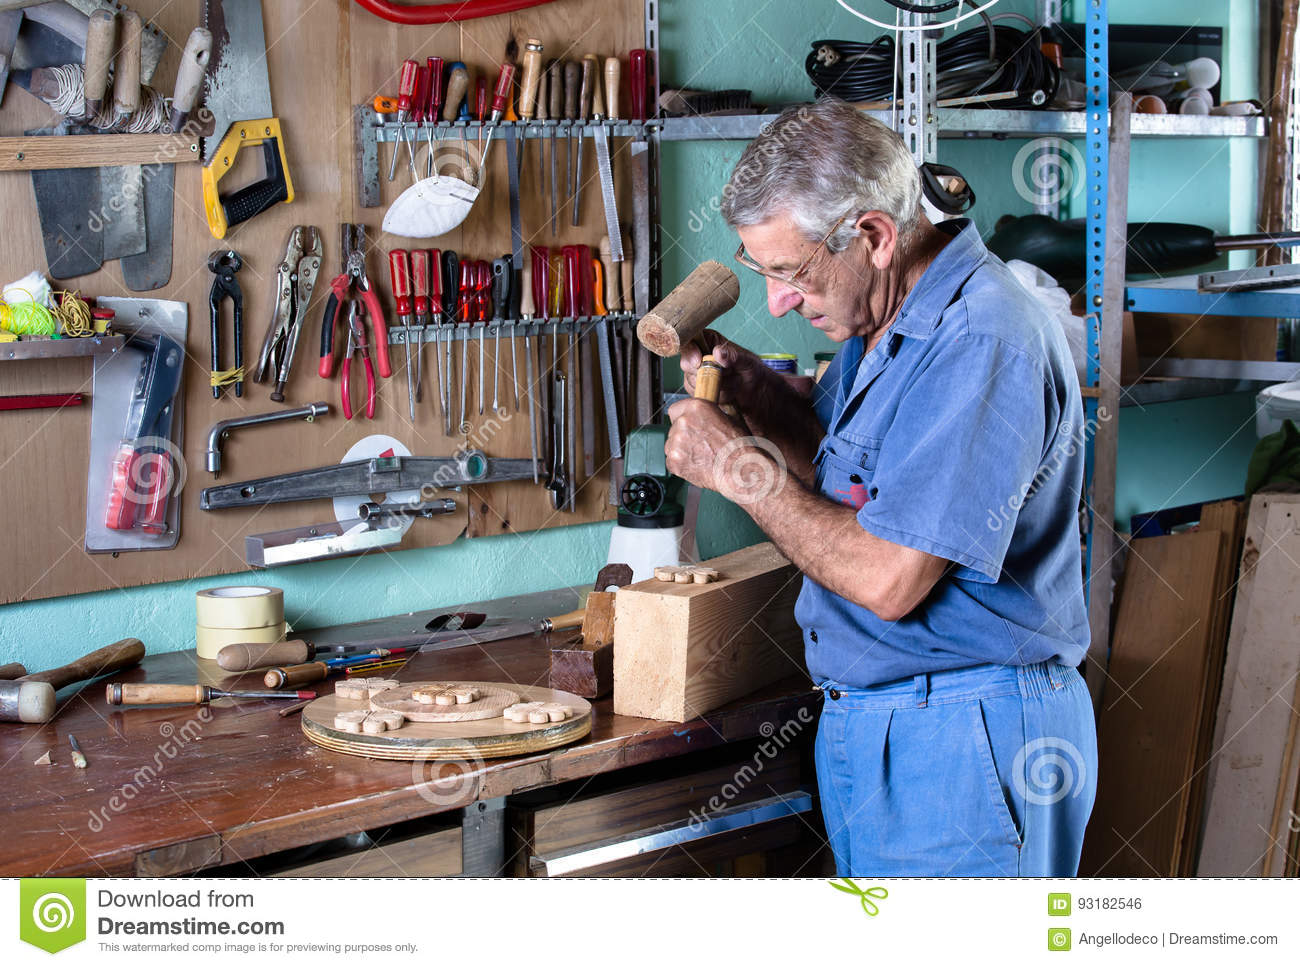 Cabinetmaker carving wood with a chisel and hammer in workbench